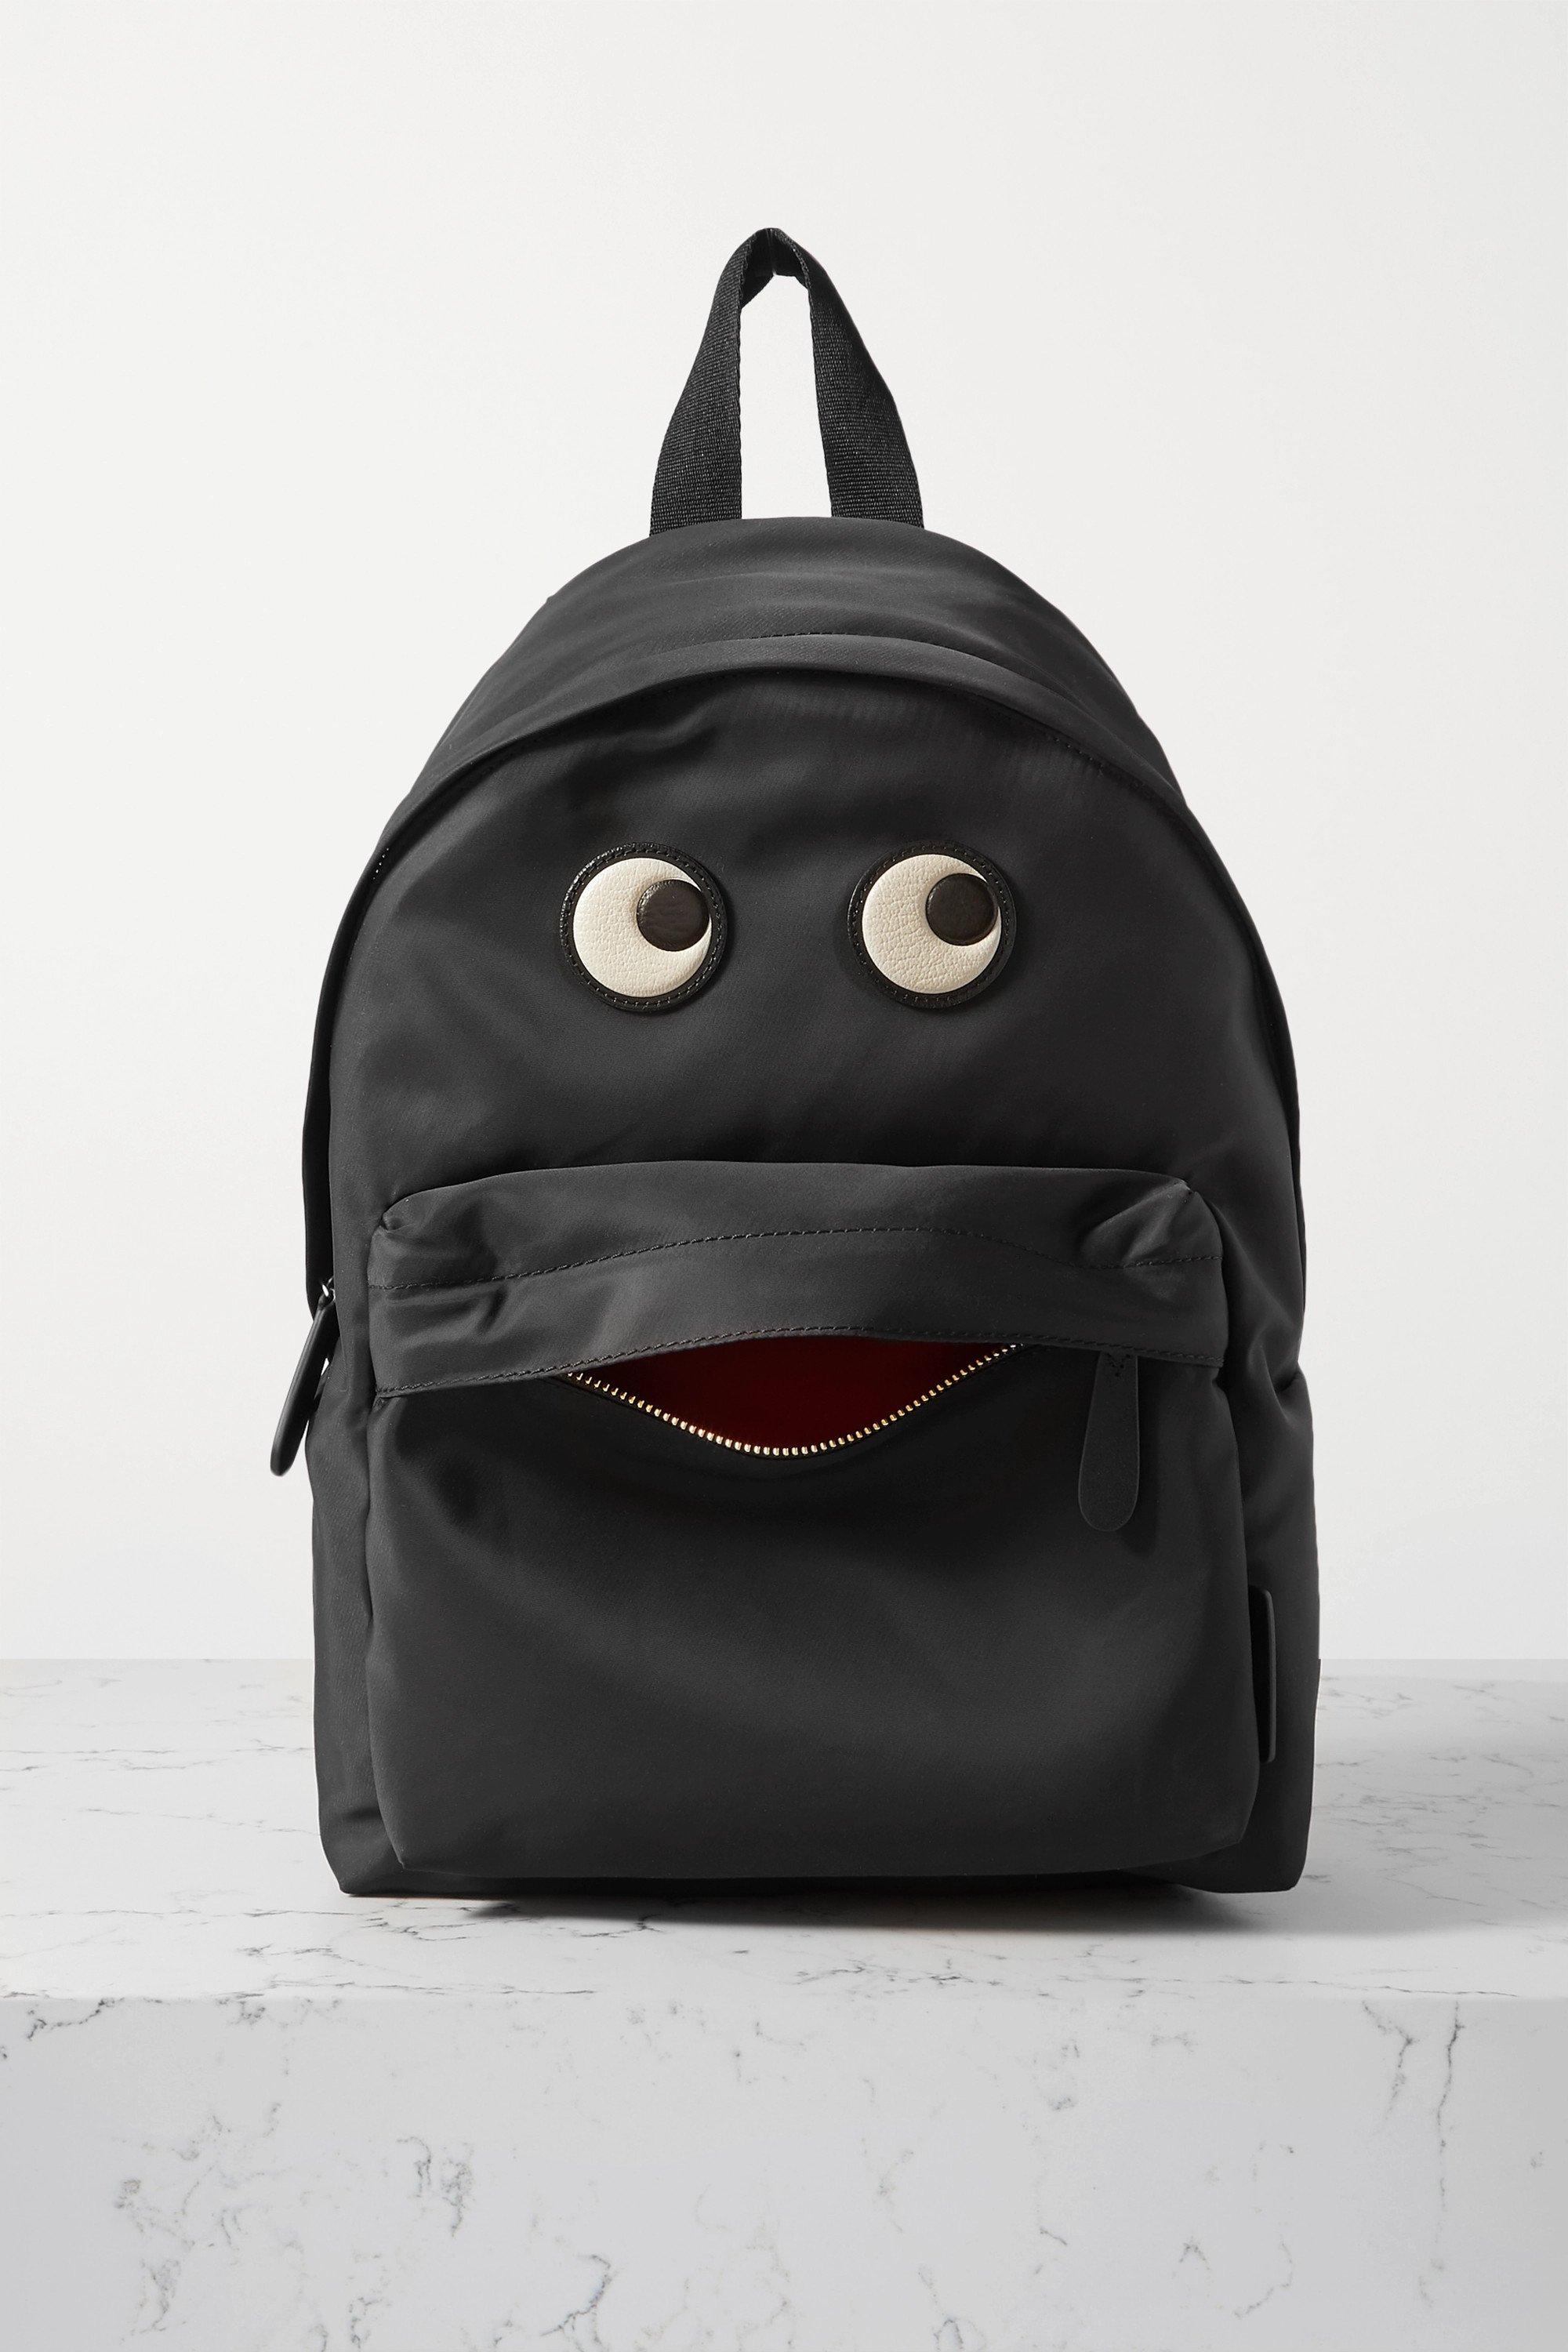 Anya Hindmarch Eyes leather-trimmed shell backpack